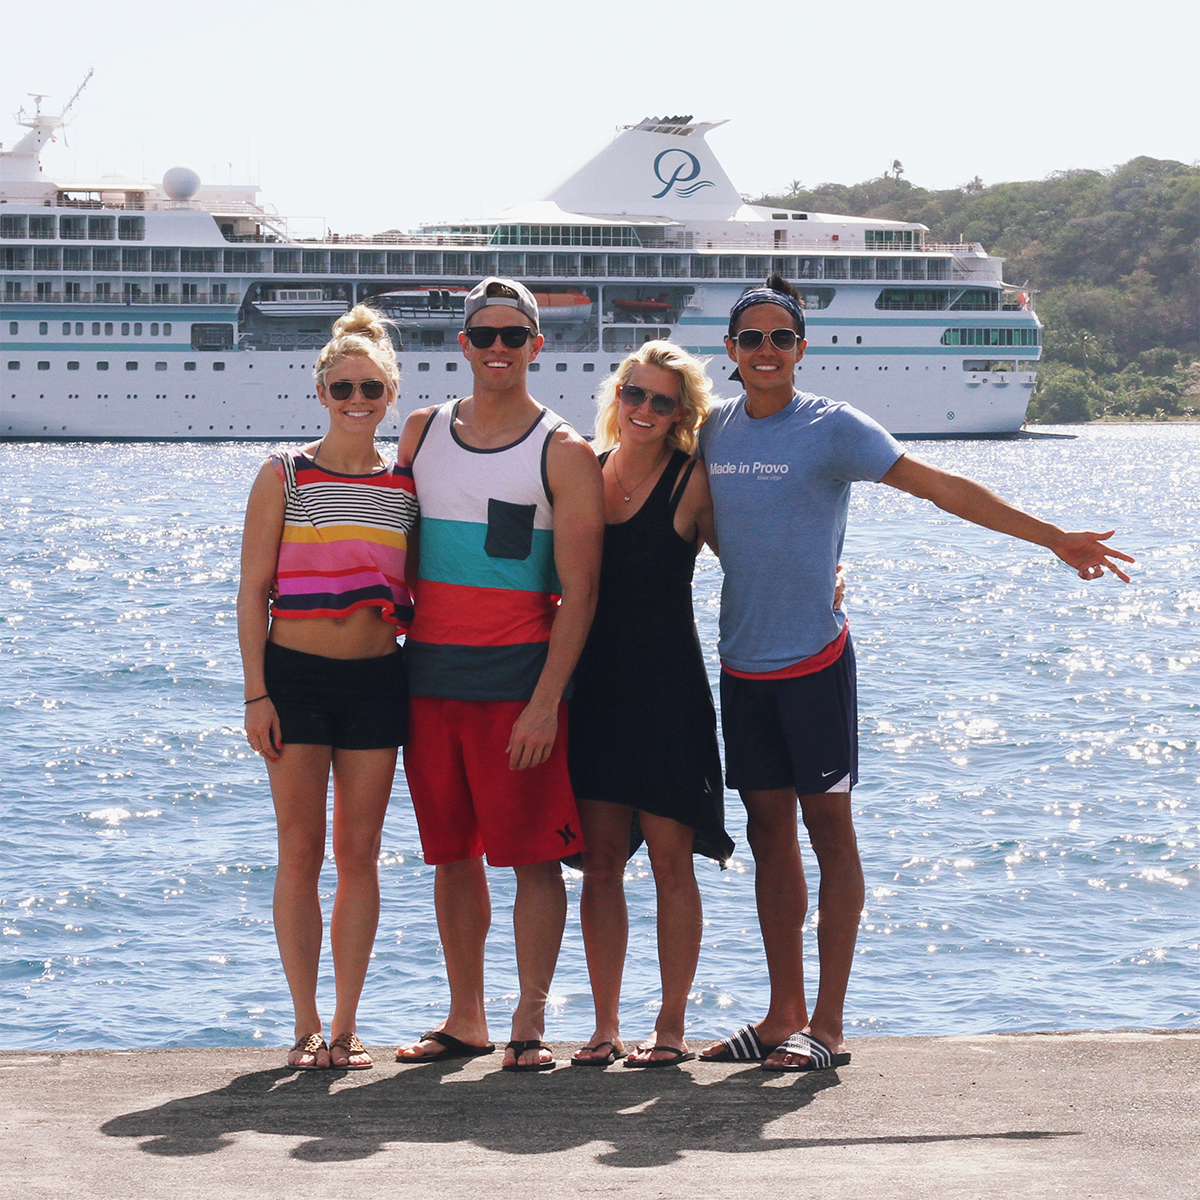 paul gauguin cruise young people